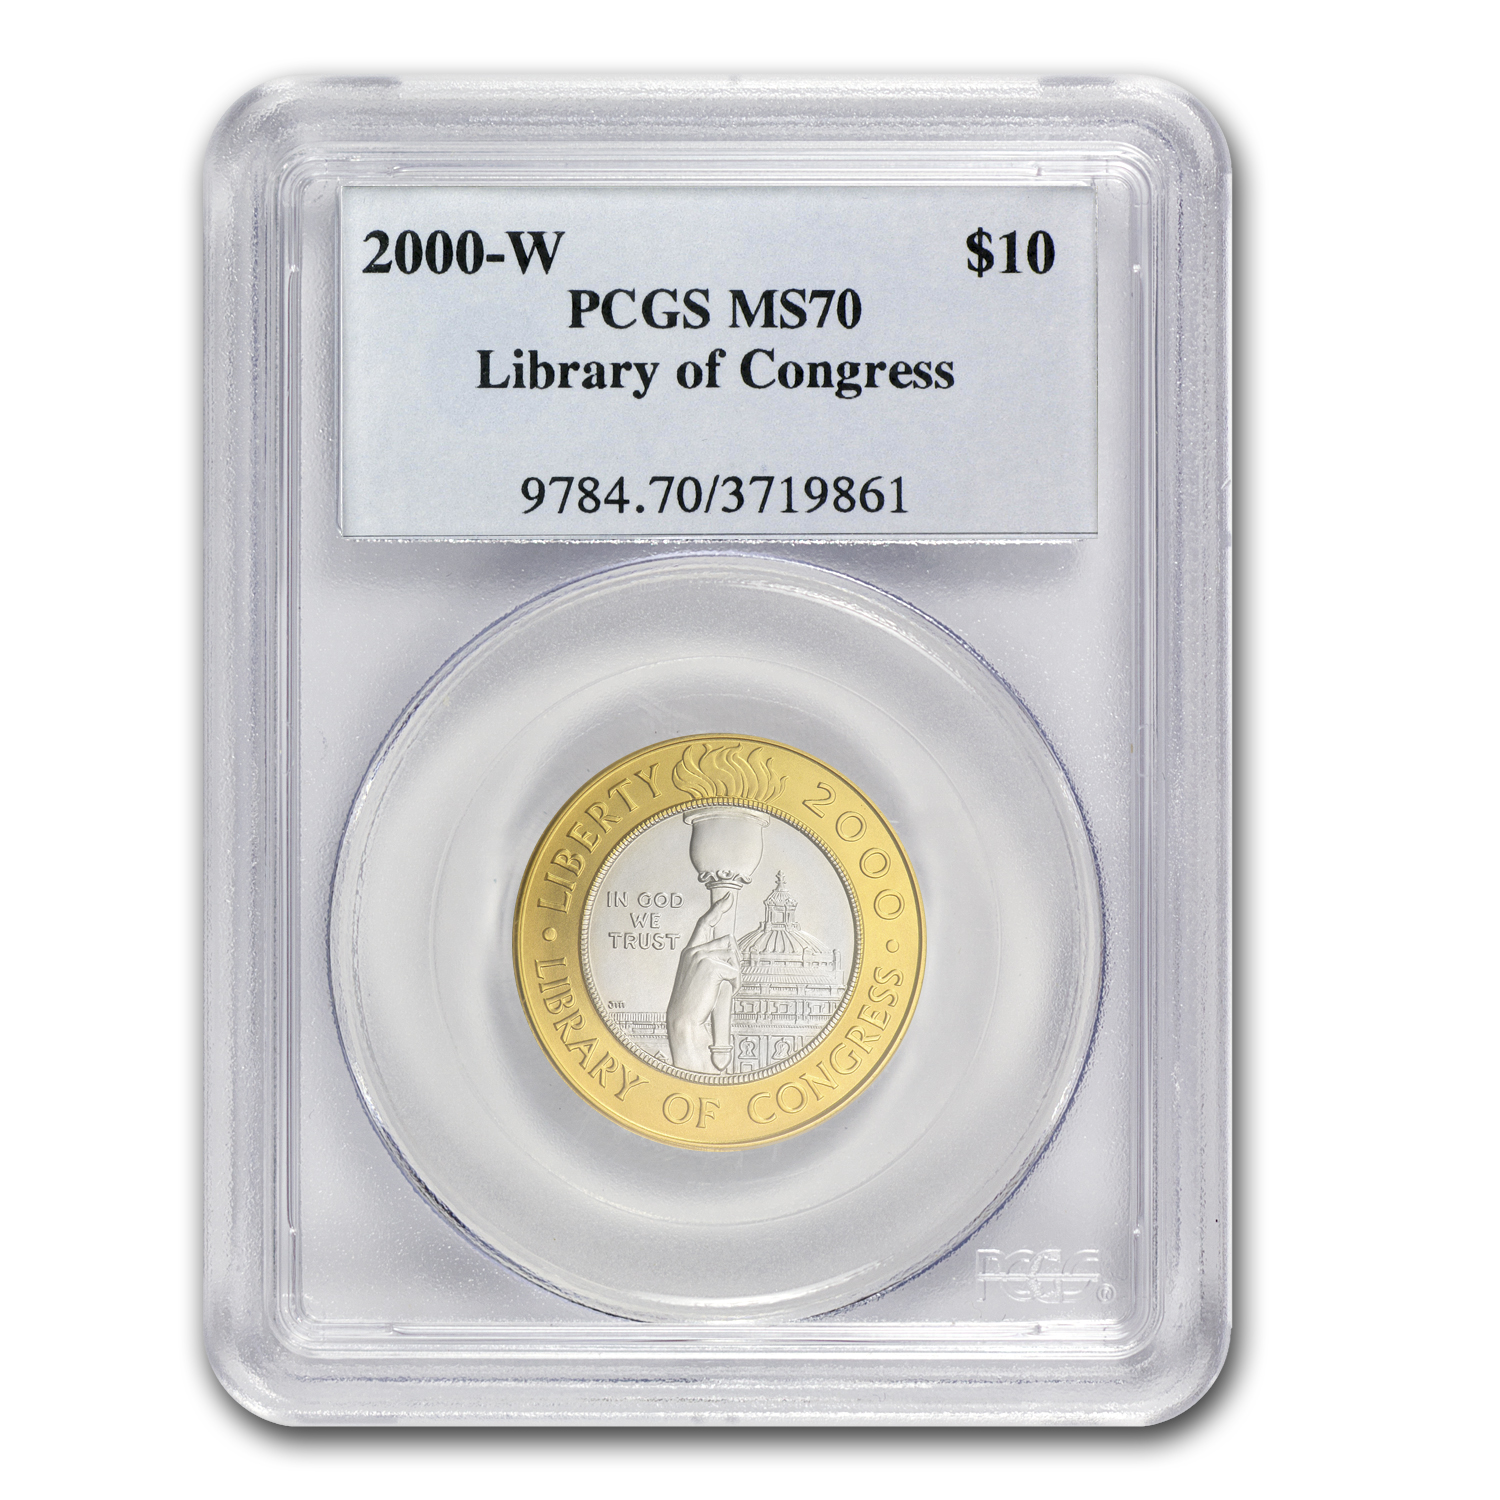 2000-W $10 Gold/Platinum Commem Library of Congress MS-70 PCGS